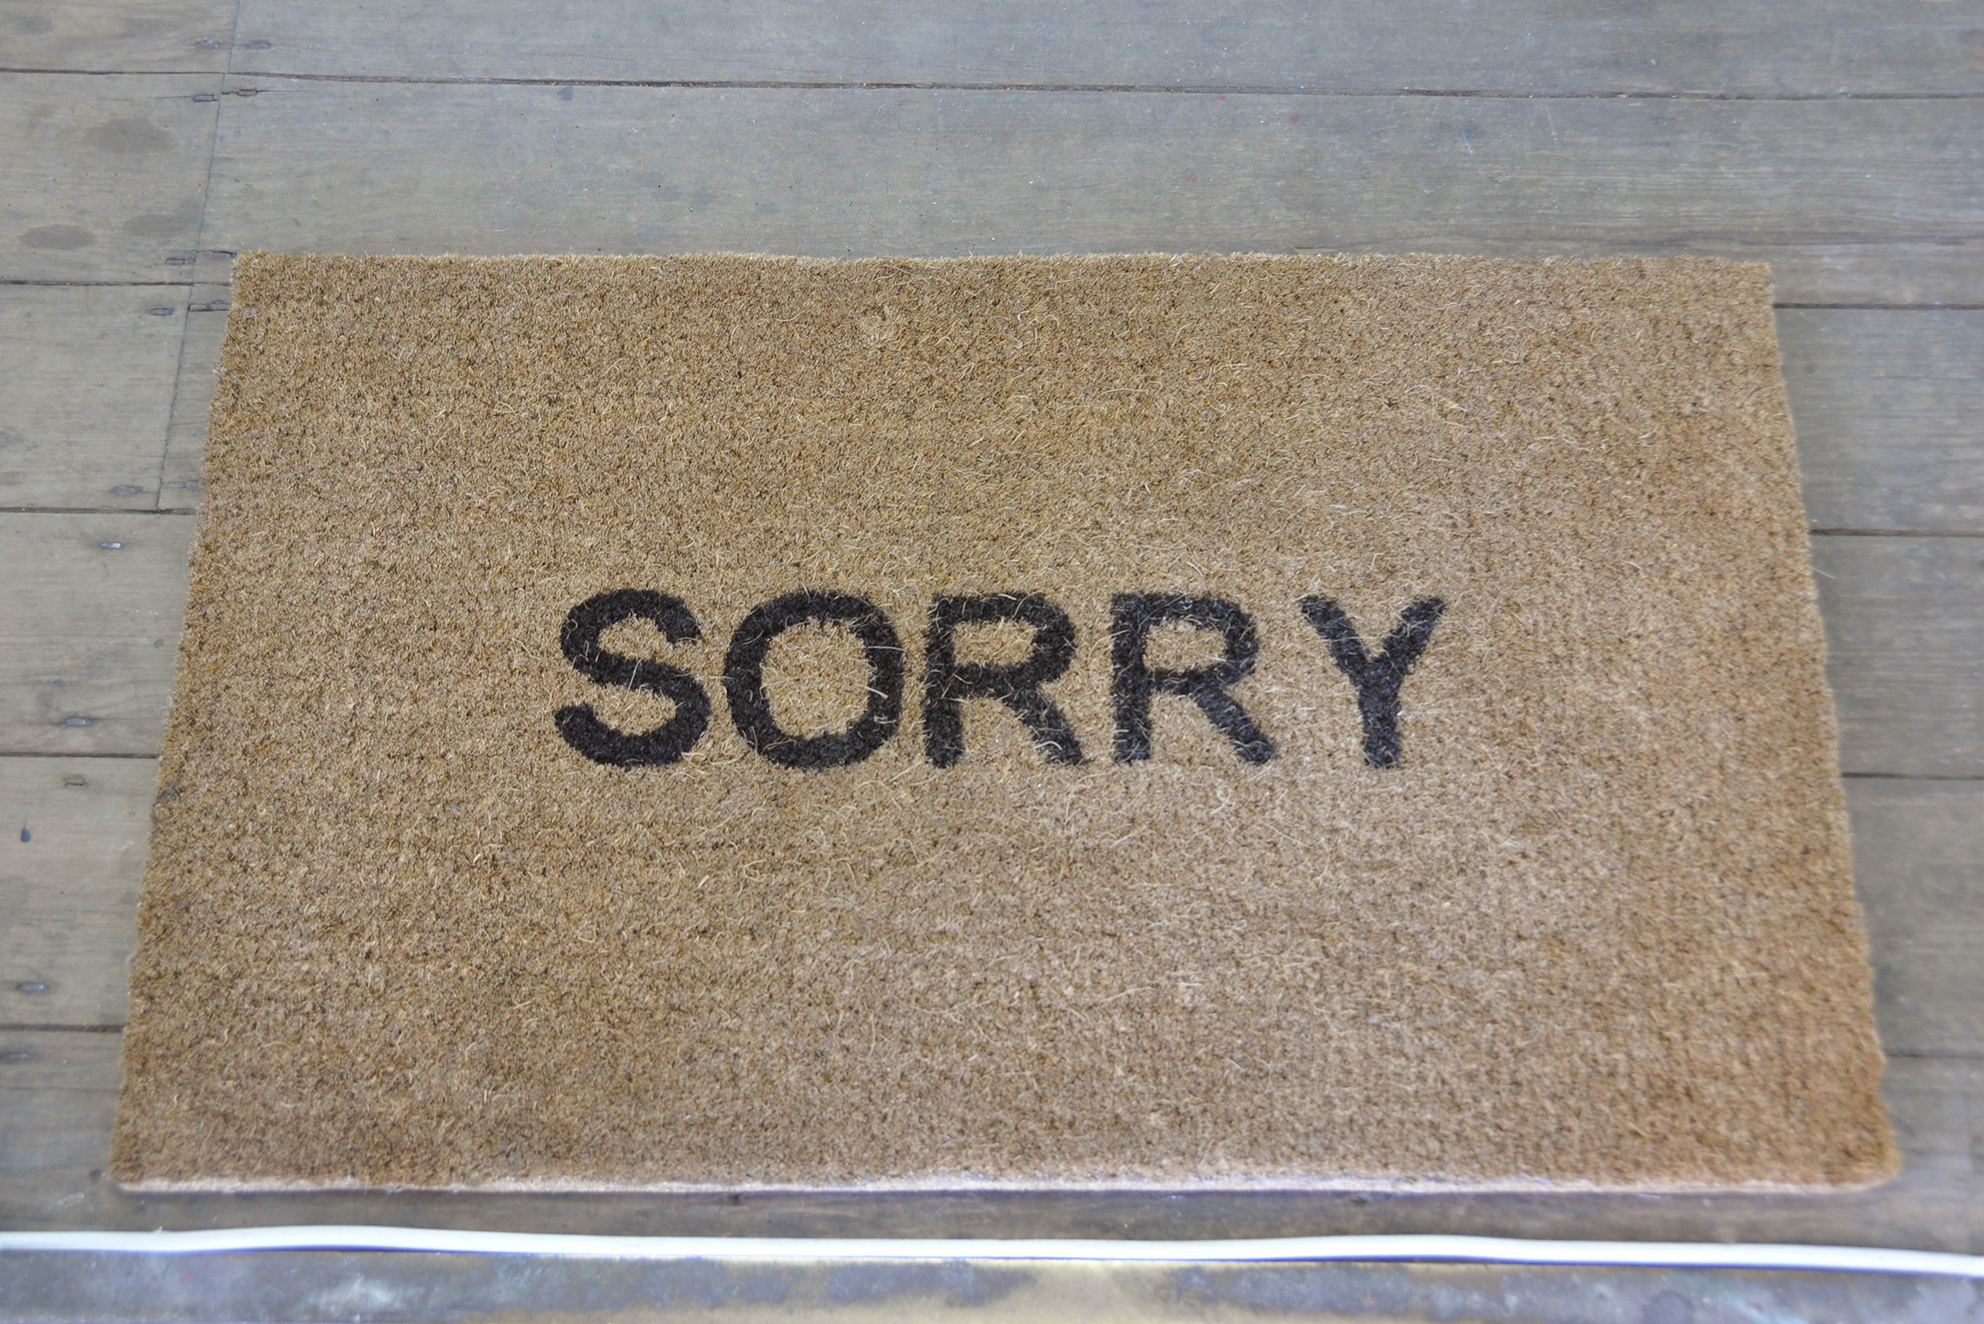 Alan Magee – SORRY Doormat – Coconut fibre – 2015